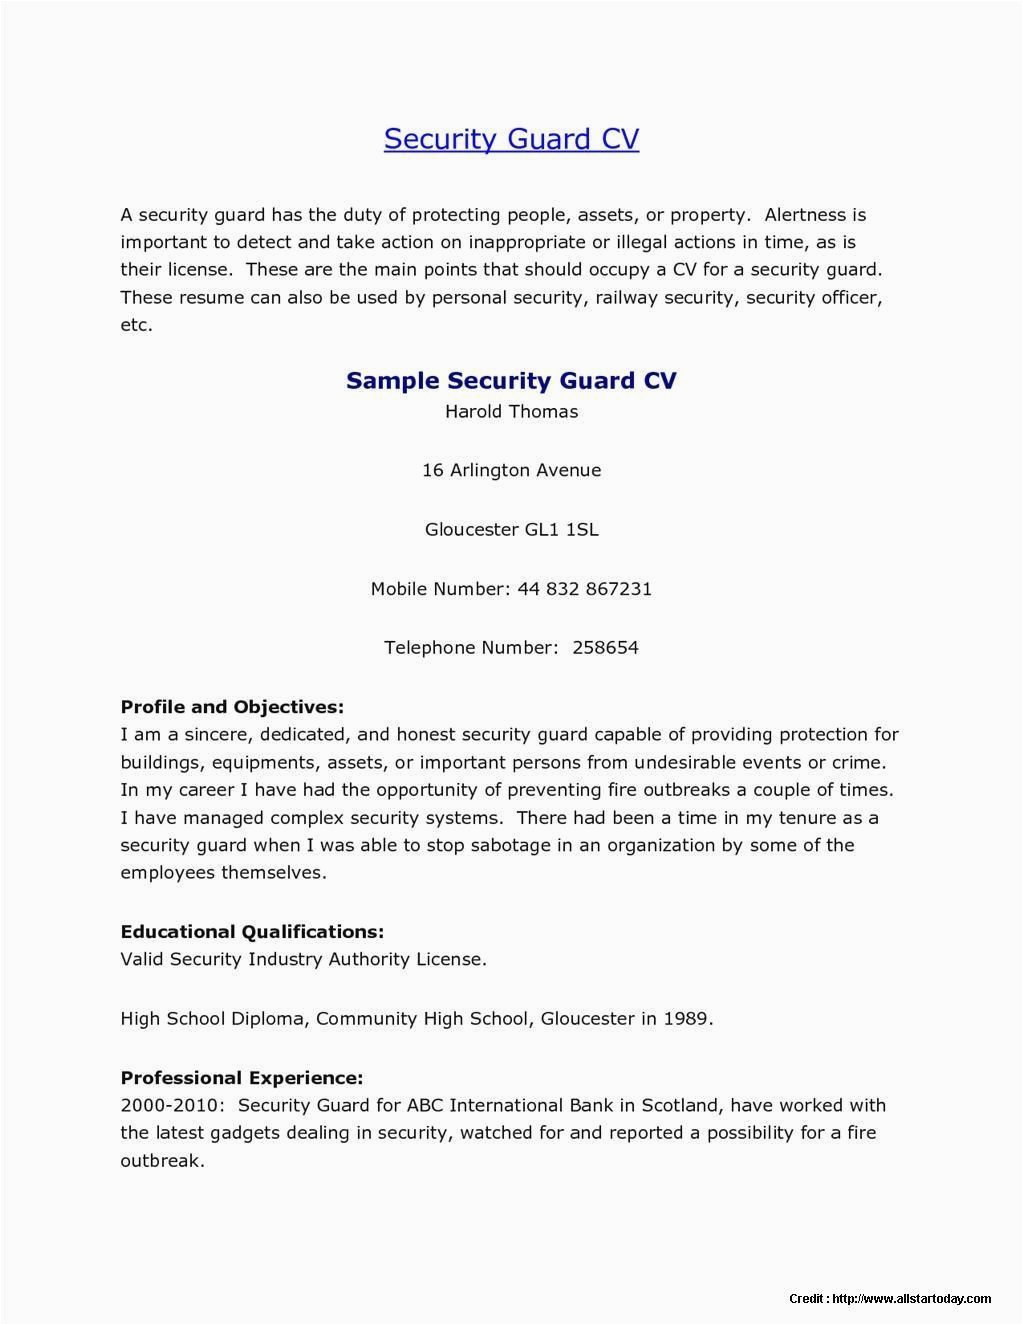 Sample Resume for Security Guard No Experience How Do I Write A Resume for A Security Guard with No